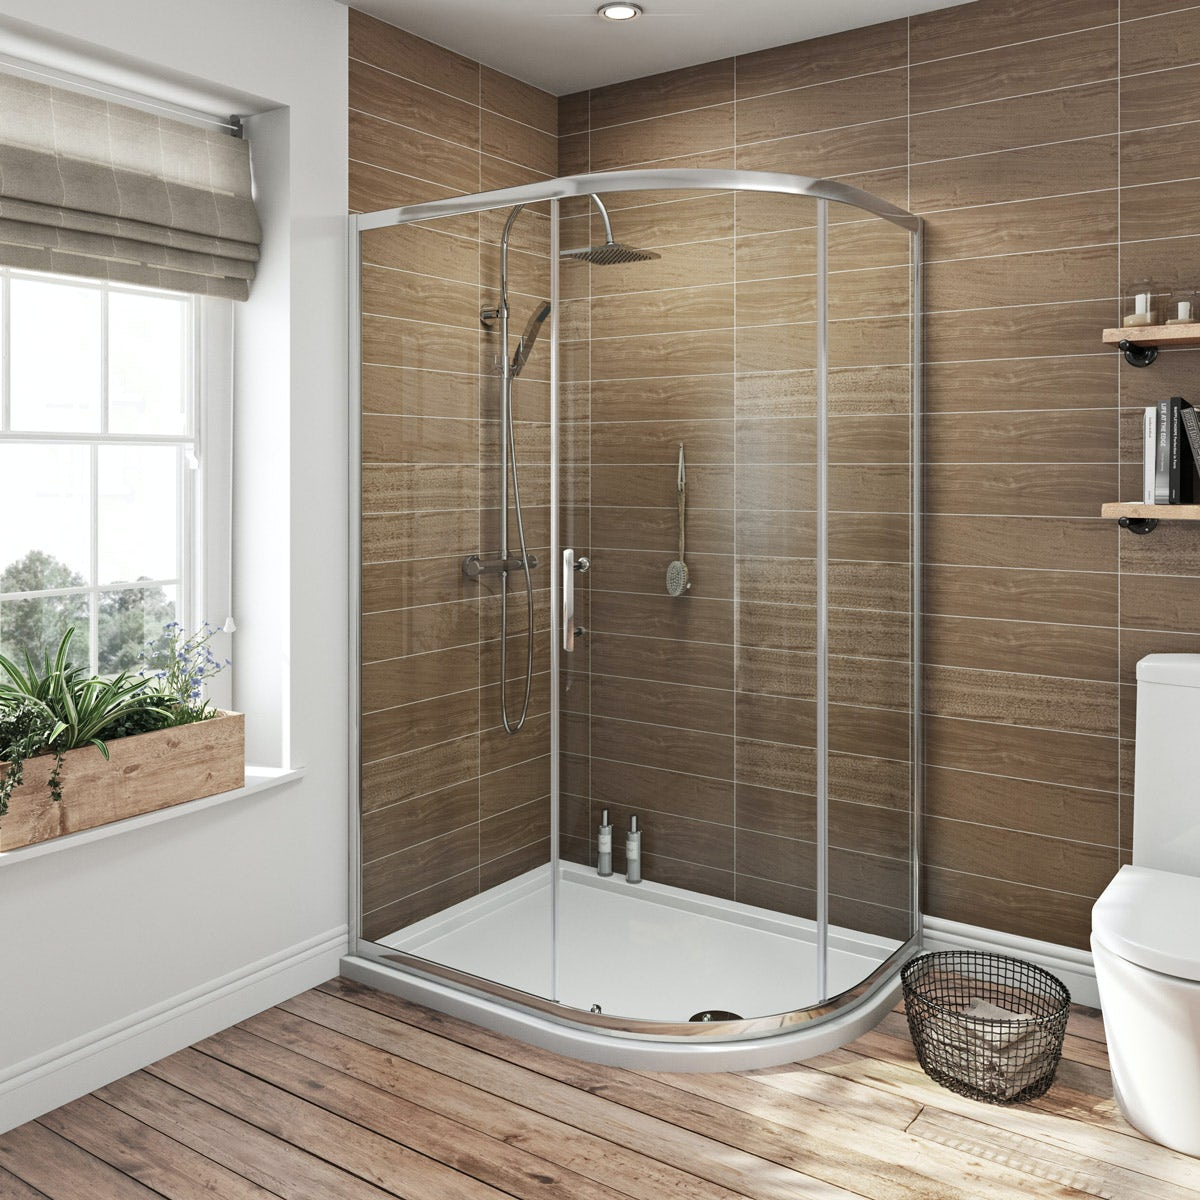 Clarity 6mm One Door Offset Quadrant Shower Enclosure 900 x 760